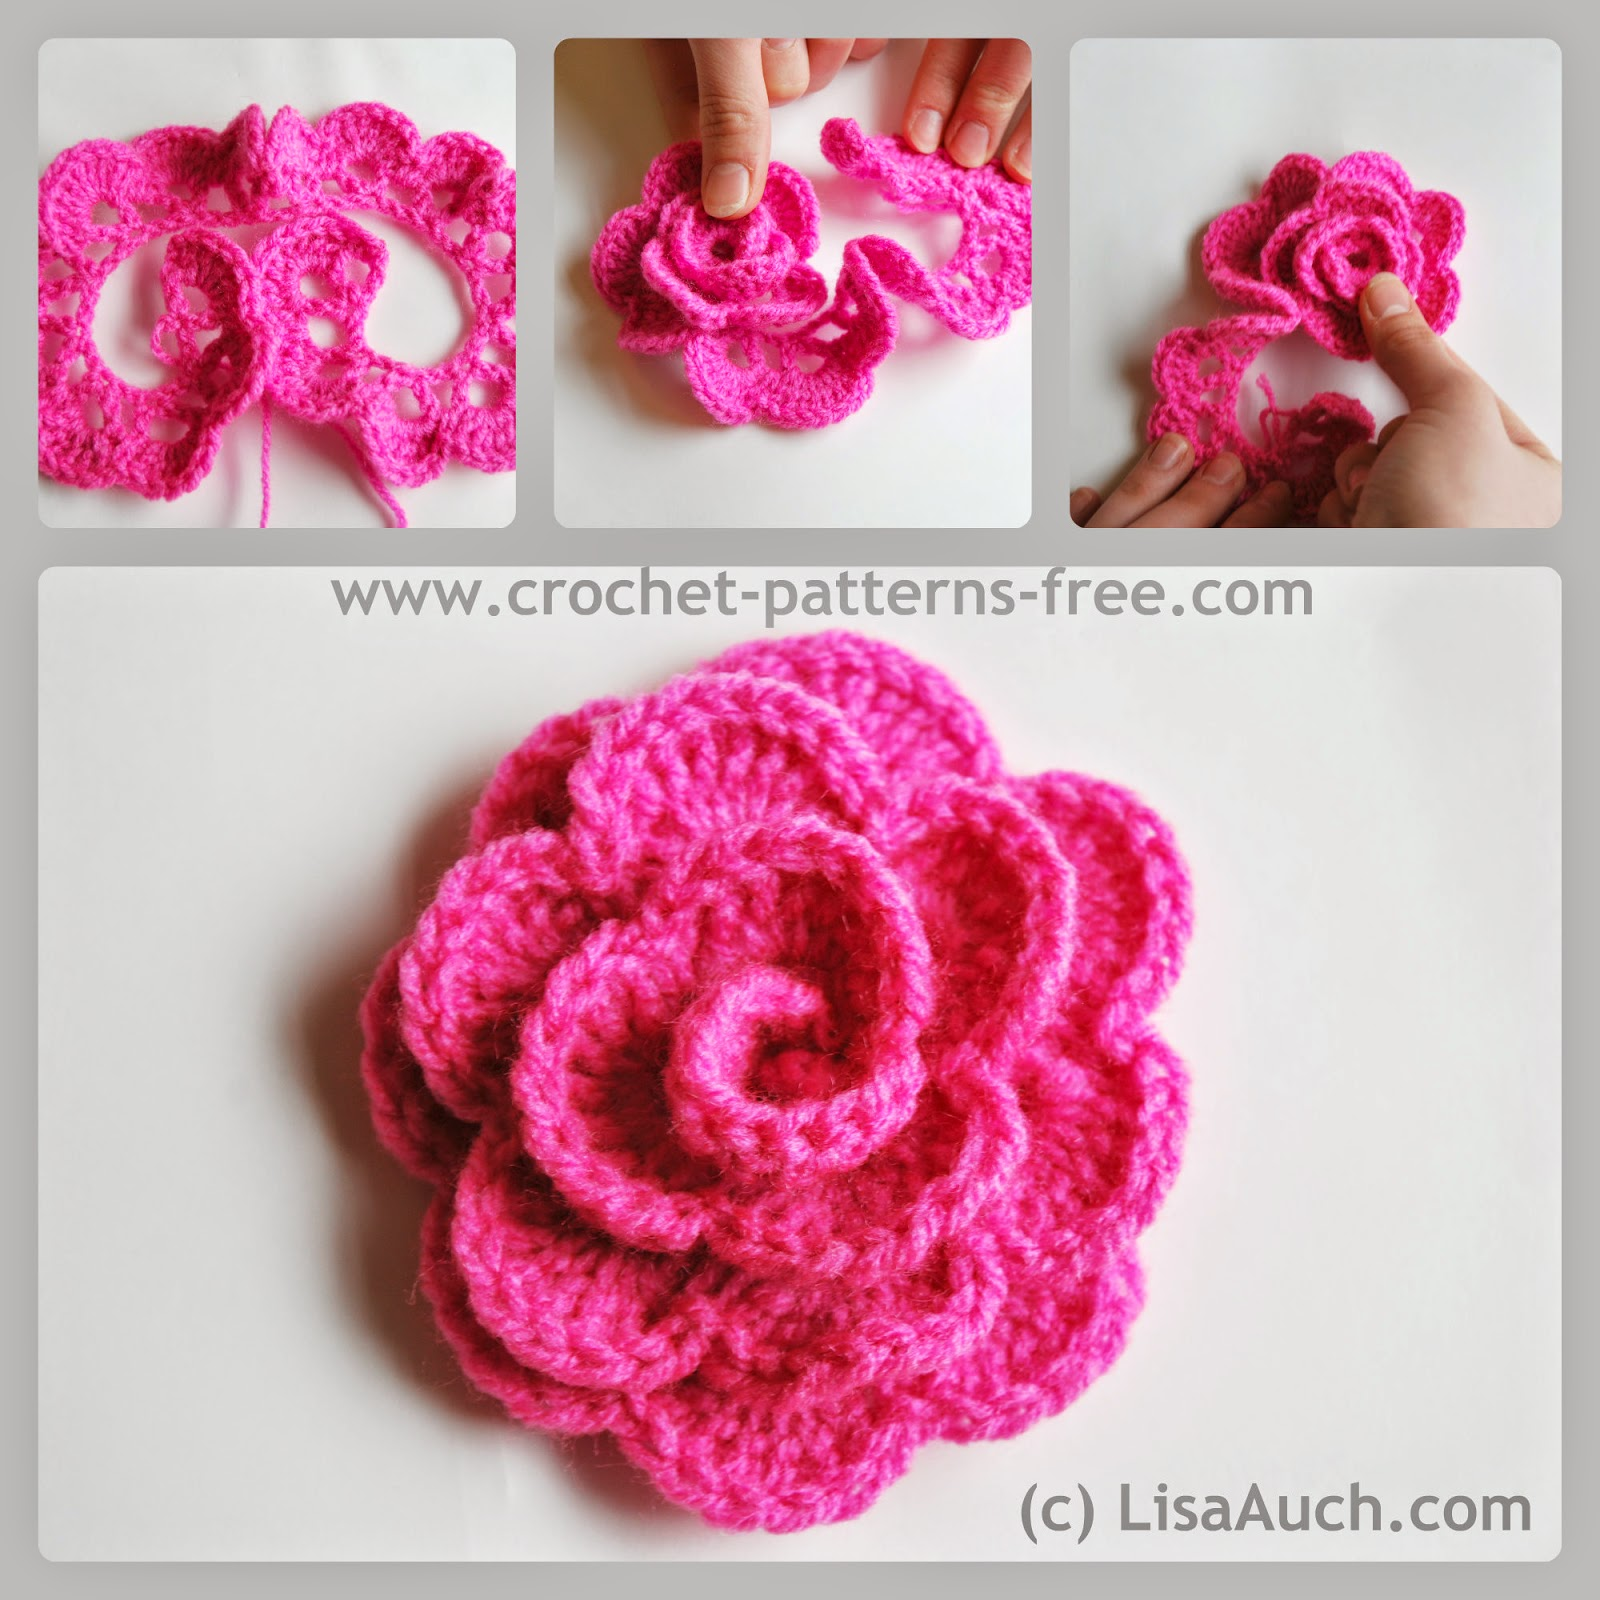 Free crochet flower pattern how to crochet a rose free crochet free crochet flower patterns crochet rose bankloansurffo Images